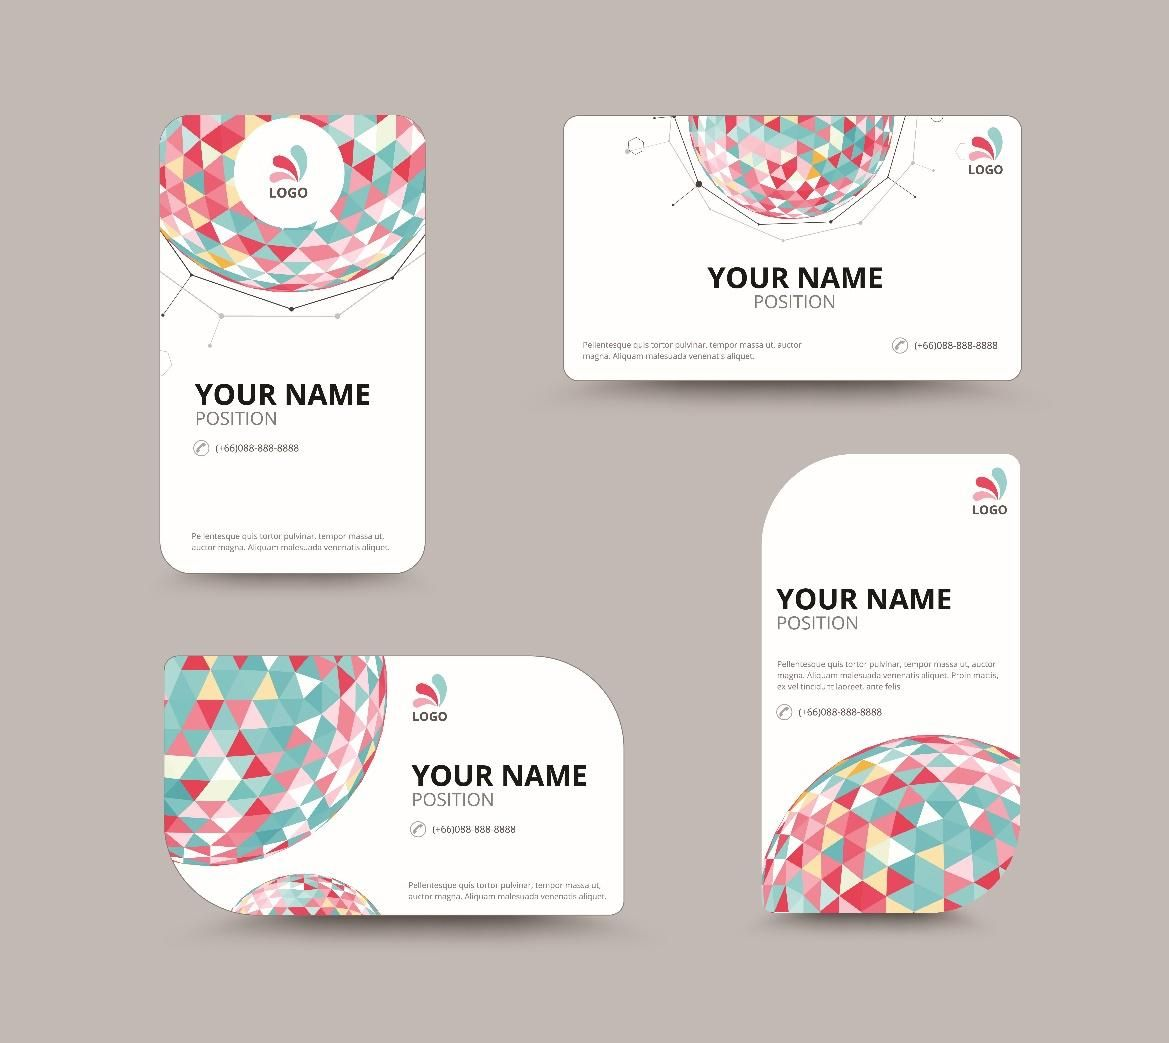 Tips when designing your business card | The Freelancer Club ...